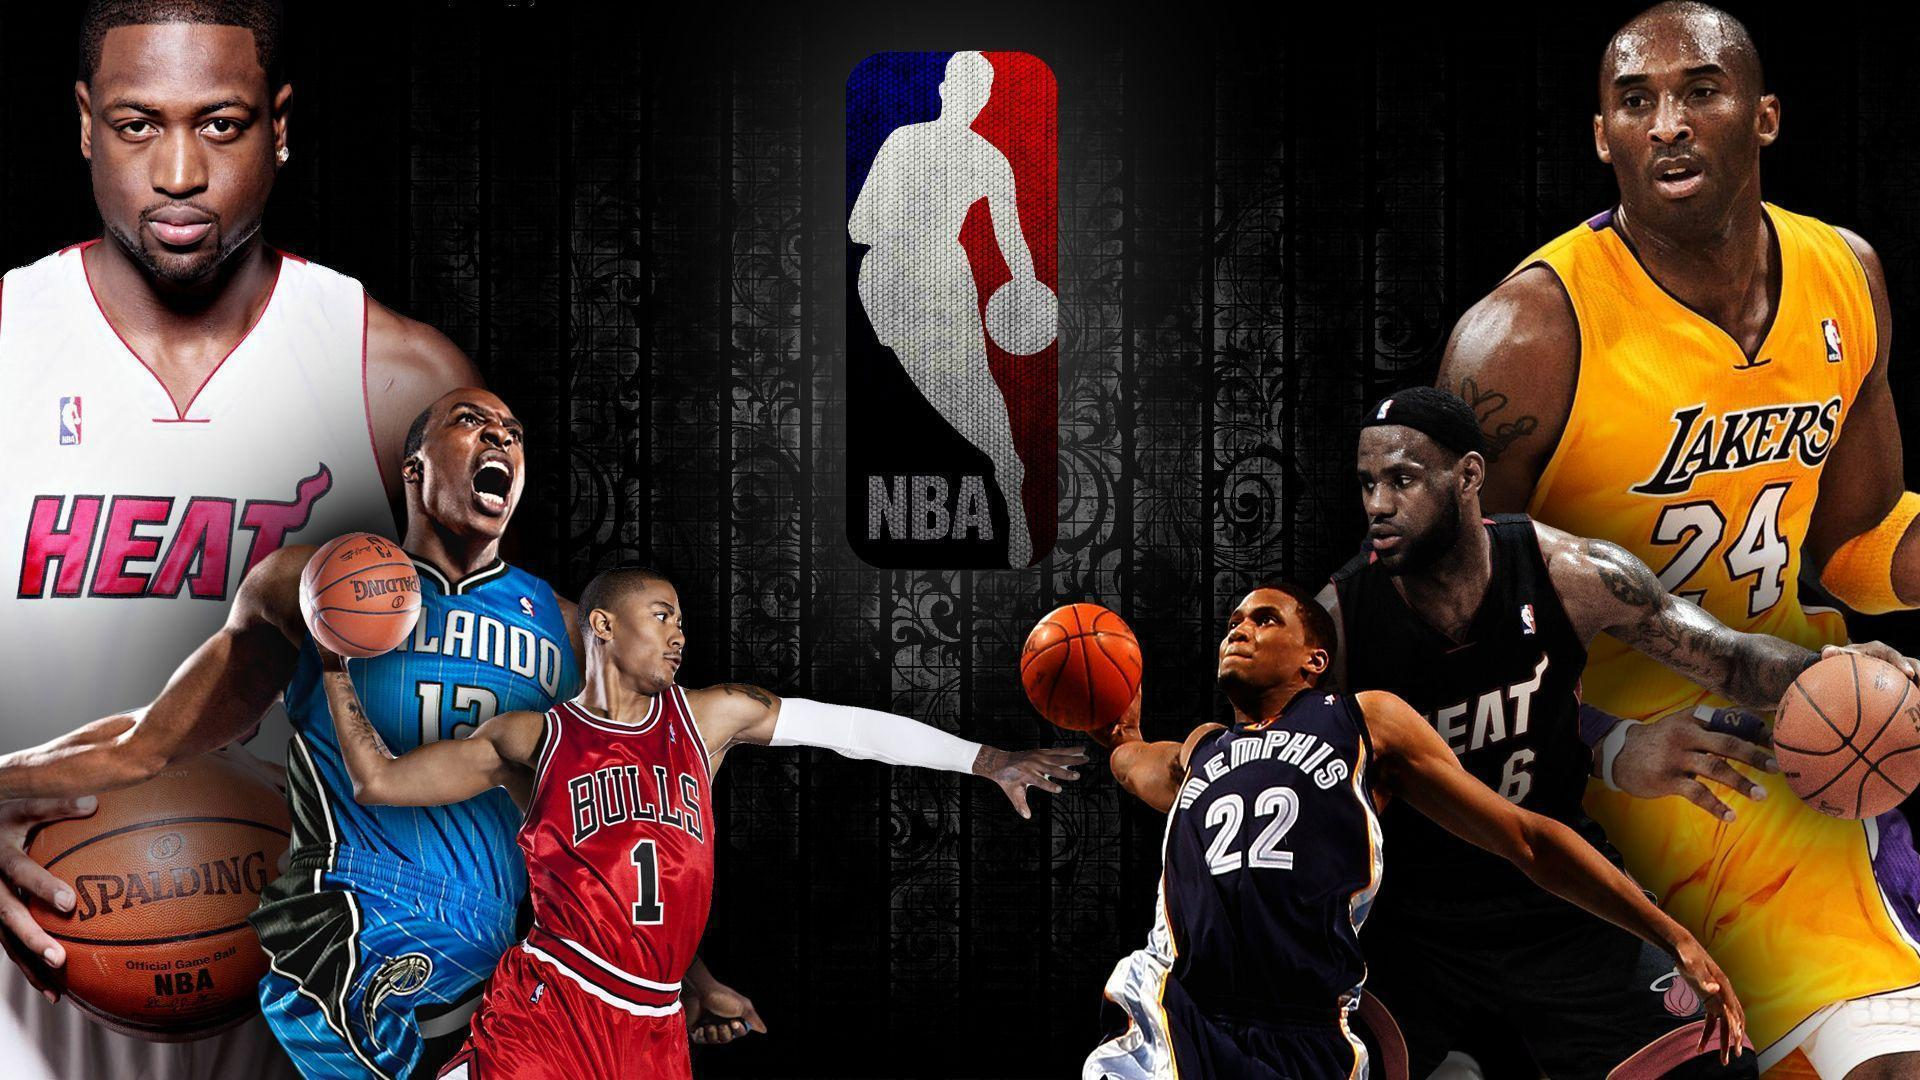 If you are a supporter of the NBA than it's sure you like these ...